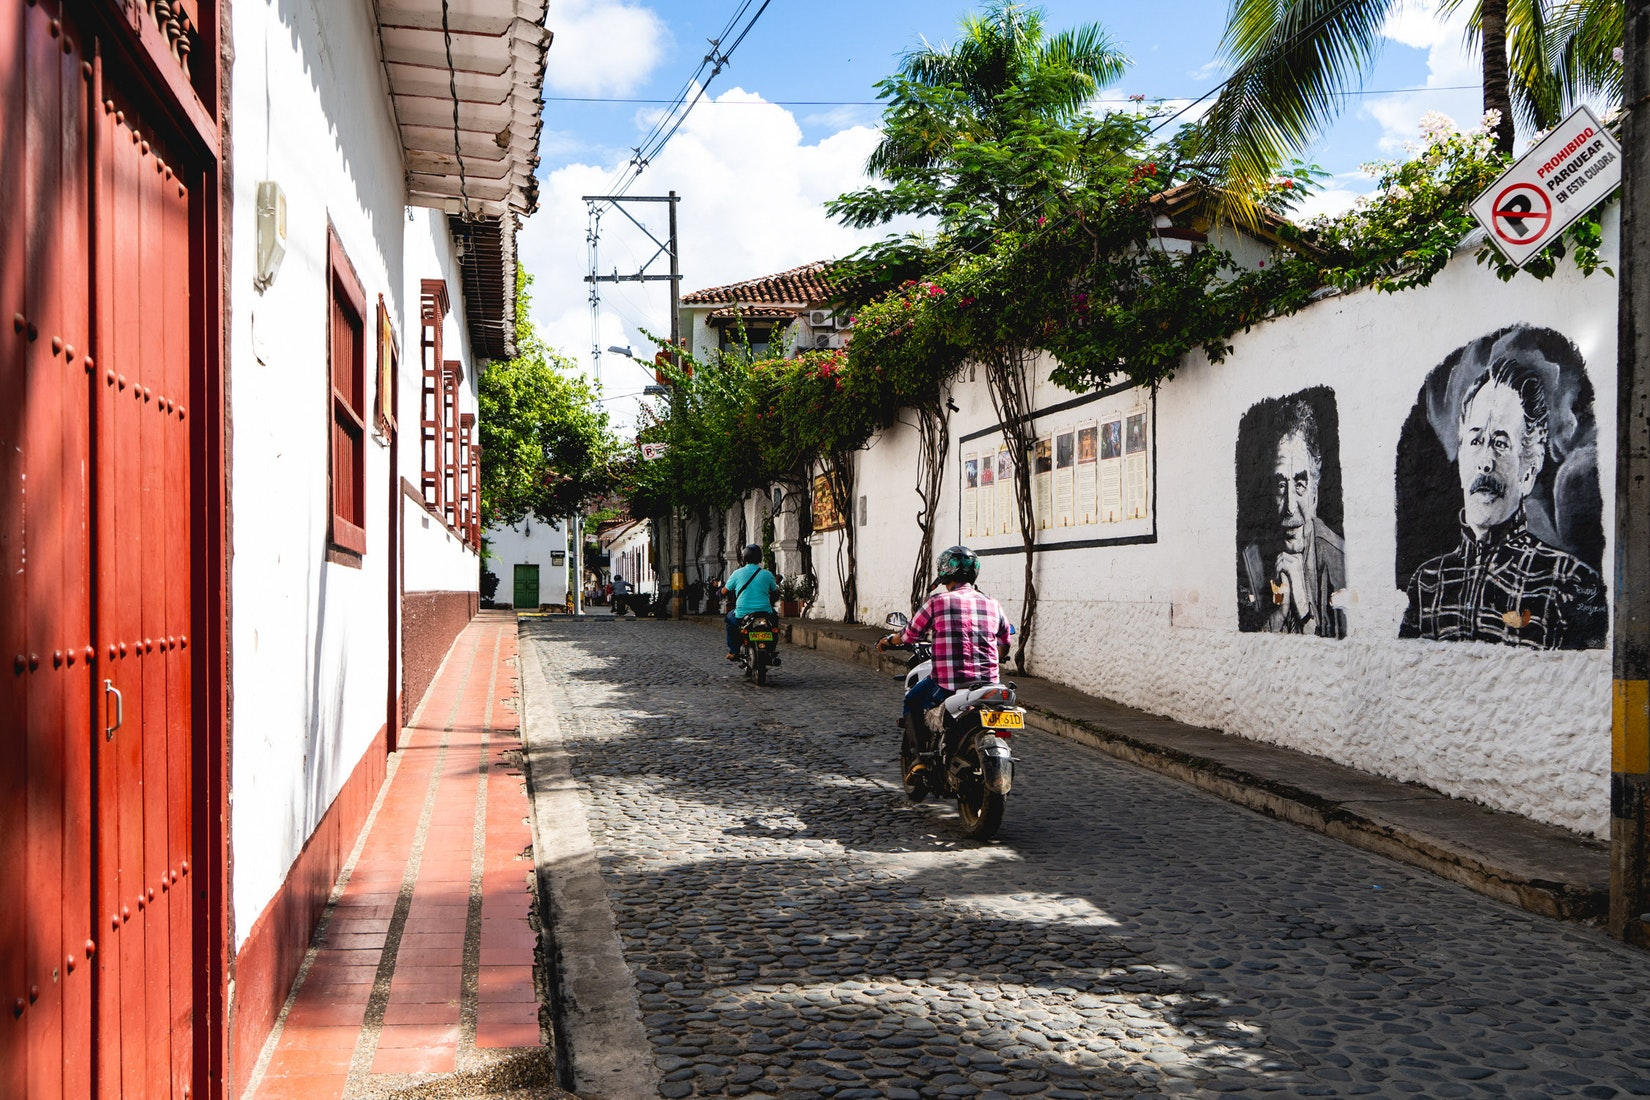 Motorcyclists on a cobblestone street in Colombia